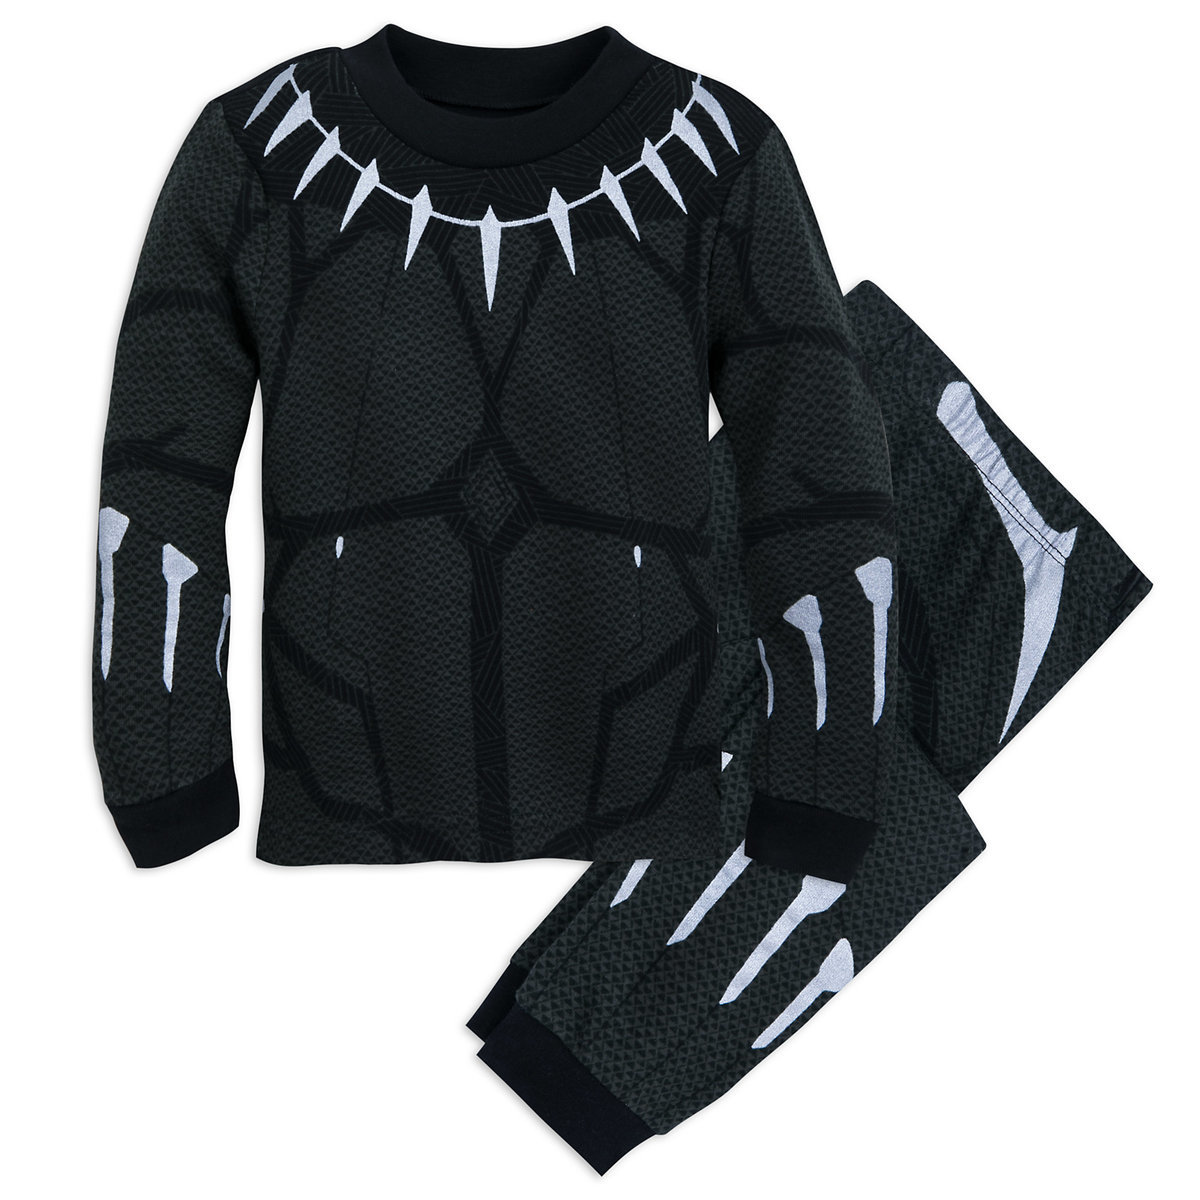 17b3fe2d60 Product Image of Black Panther Costume PJ PALS for Boys # 1